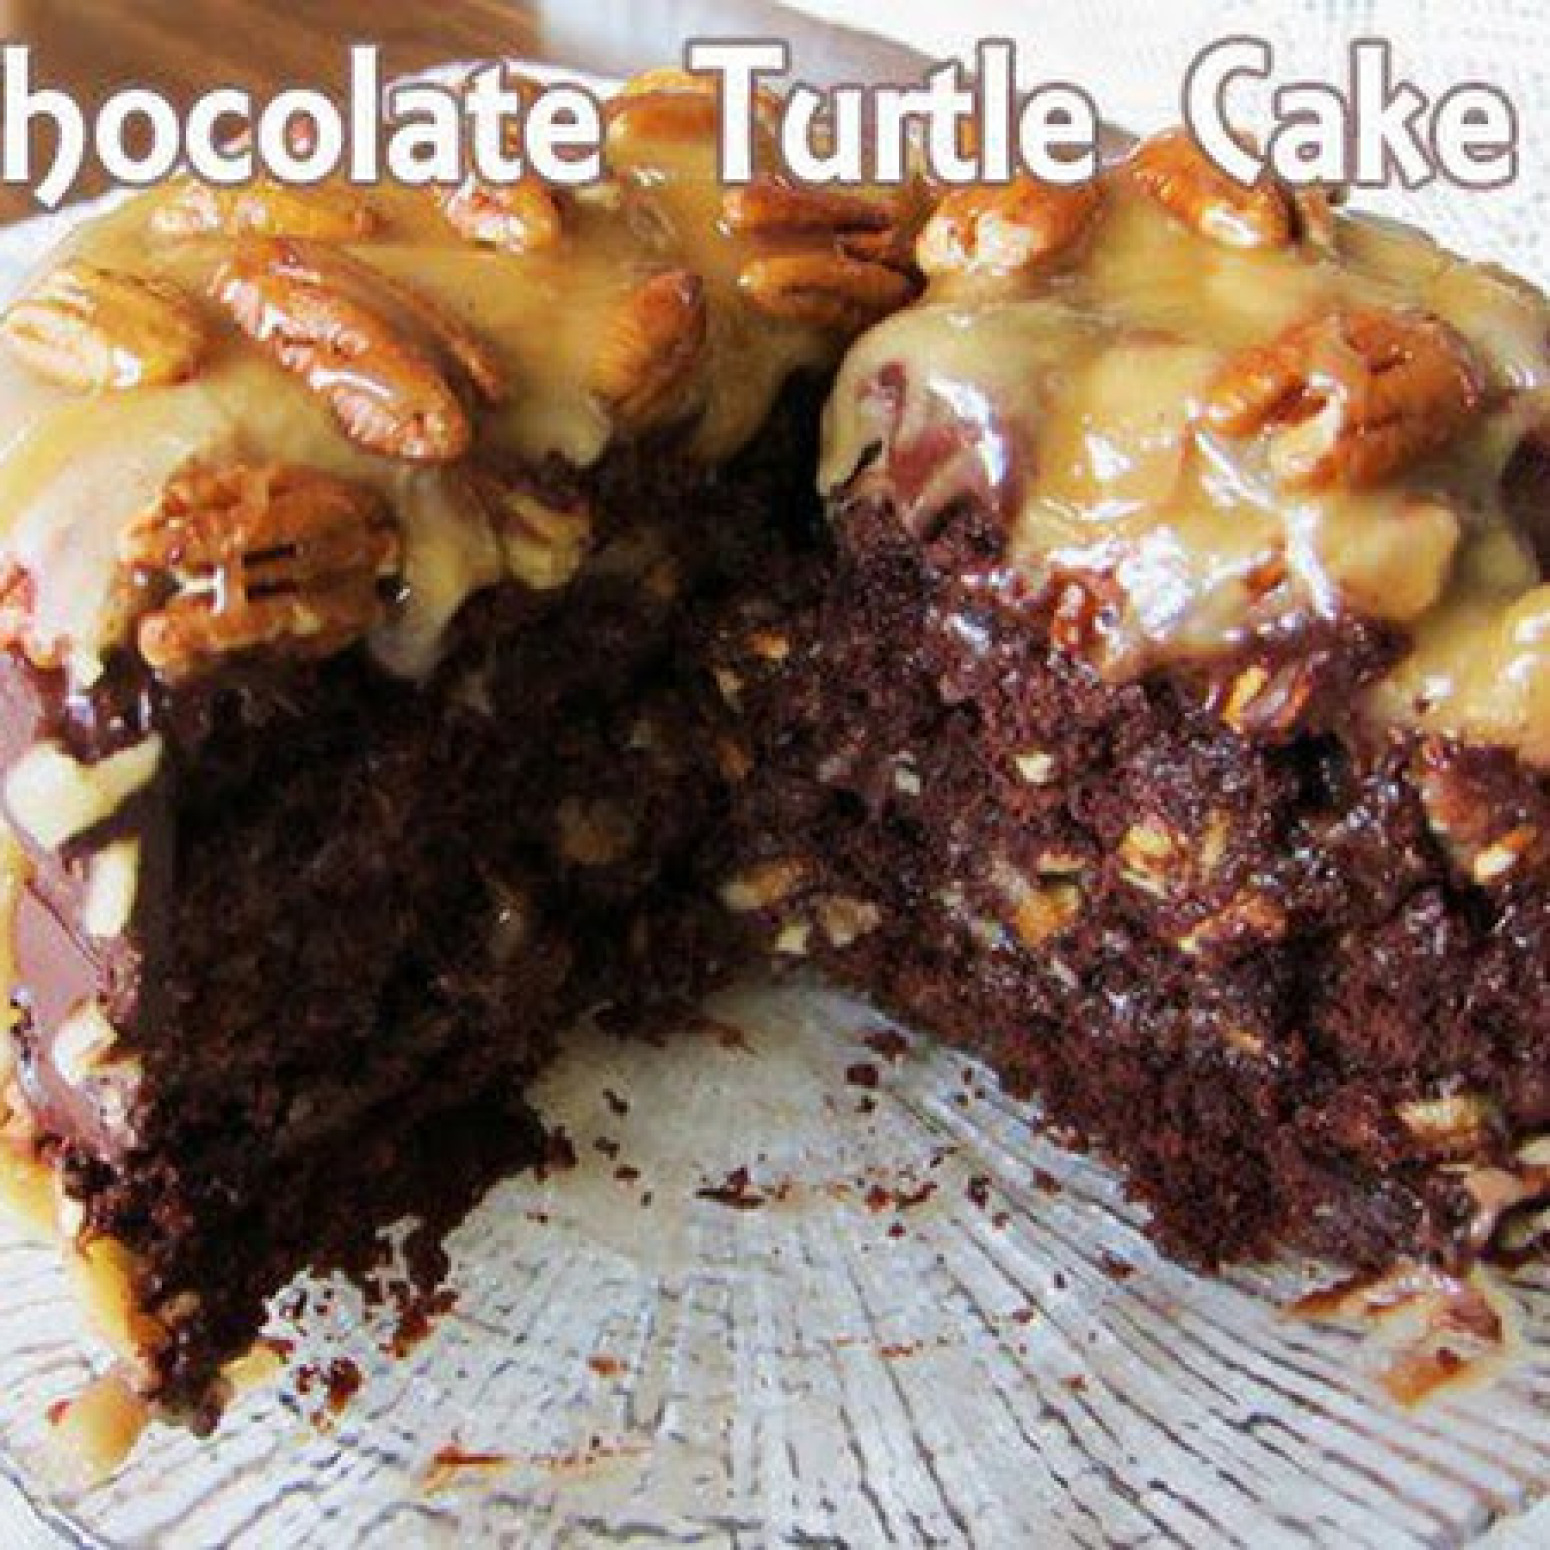 Chocolate Pecan Clusters Dunmore Candy Kitchen: Chocolate Turtle Cake Recipe 9